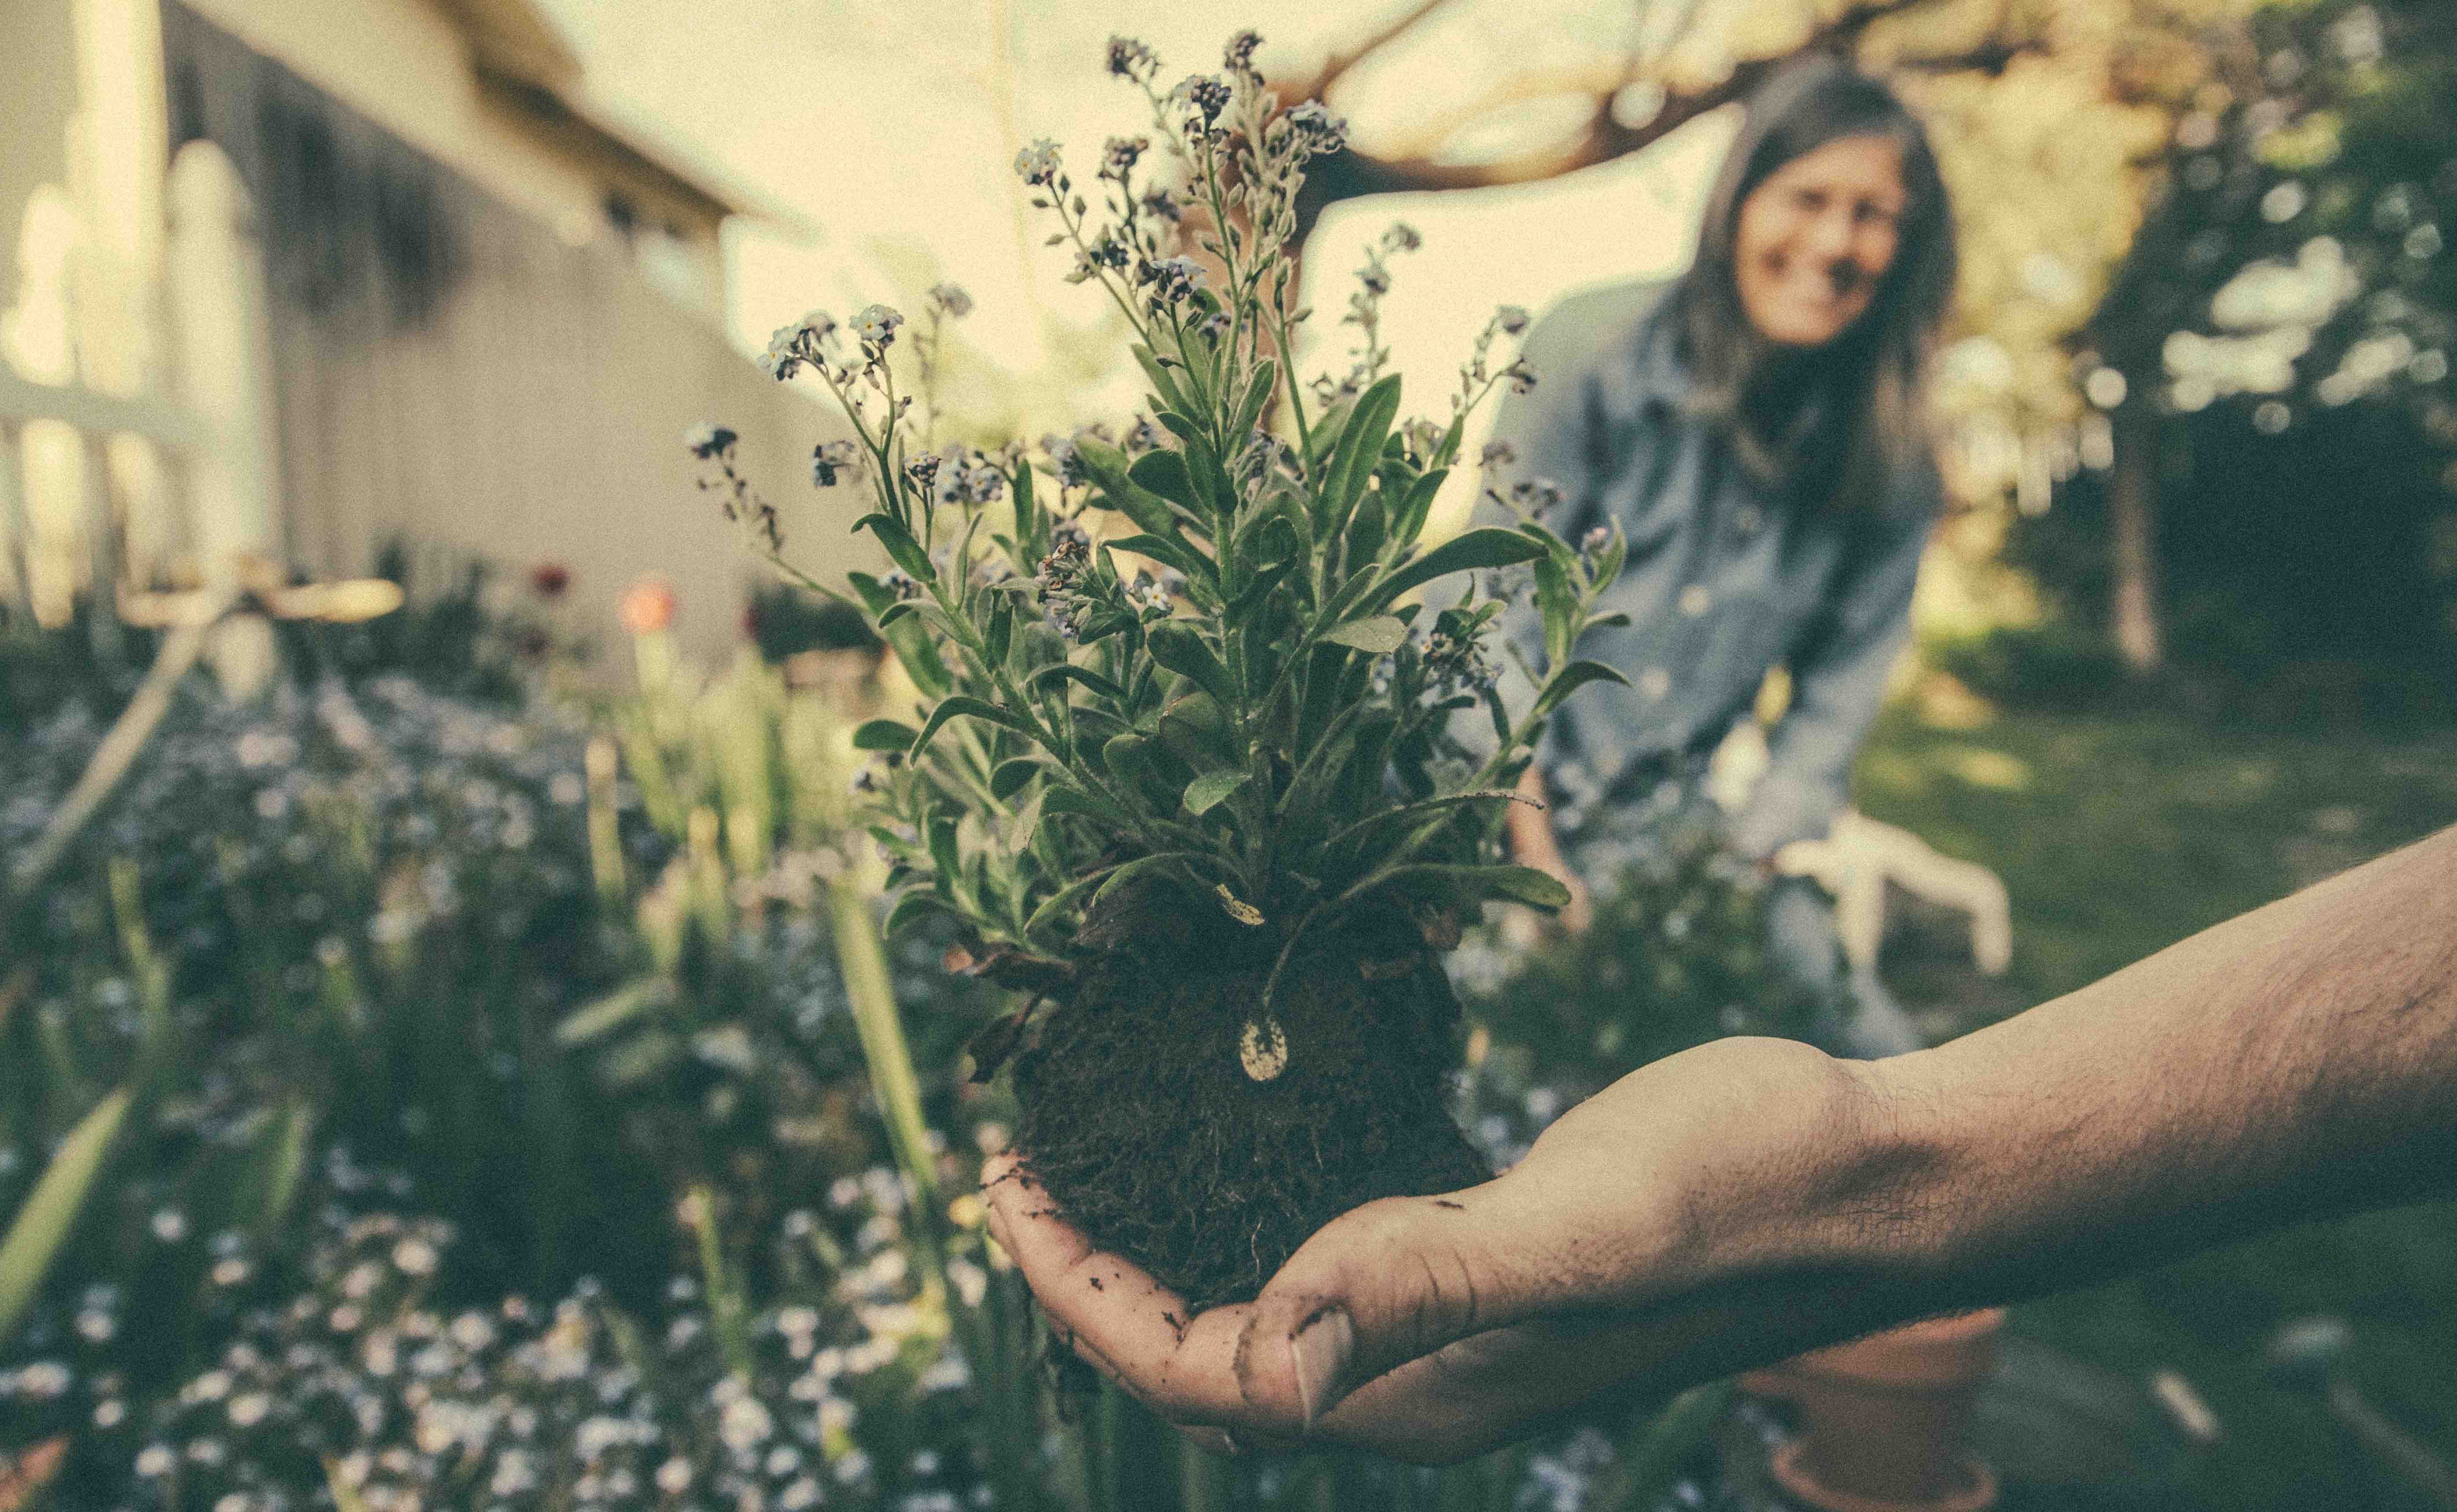 Gardening In Social Isolation